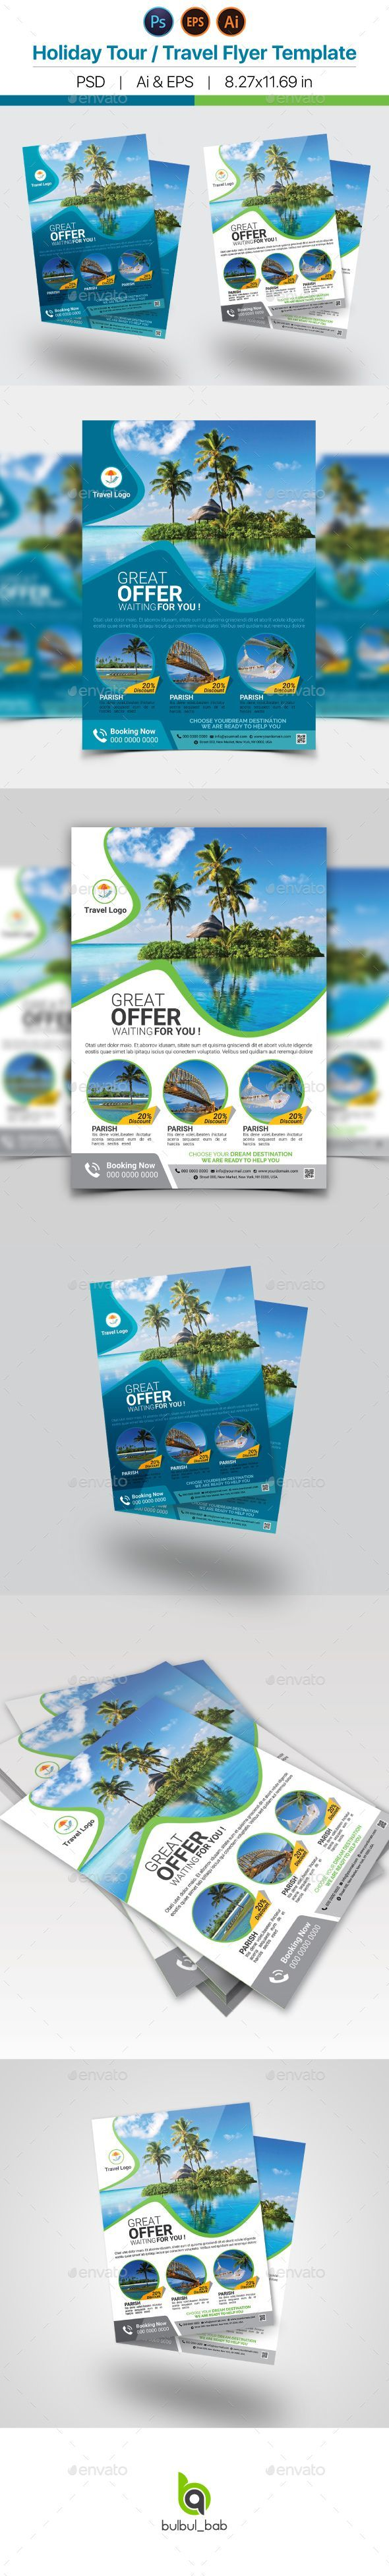 Holiday Travel / Tour Flyer Template - Holidays Events Download here: https://graphicriver.net/item/holiday-traveltour-flyer-template/15798338?ref=classicdesignp